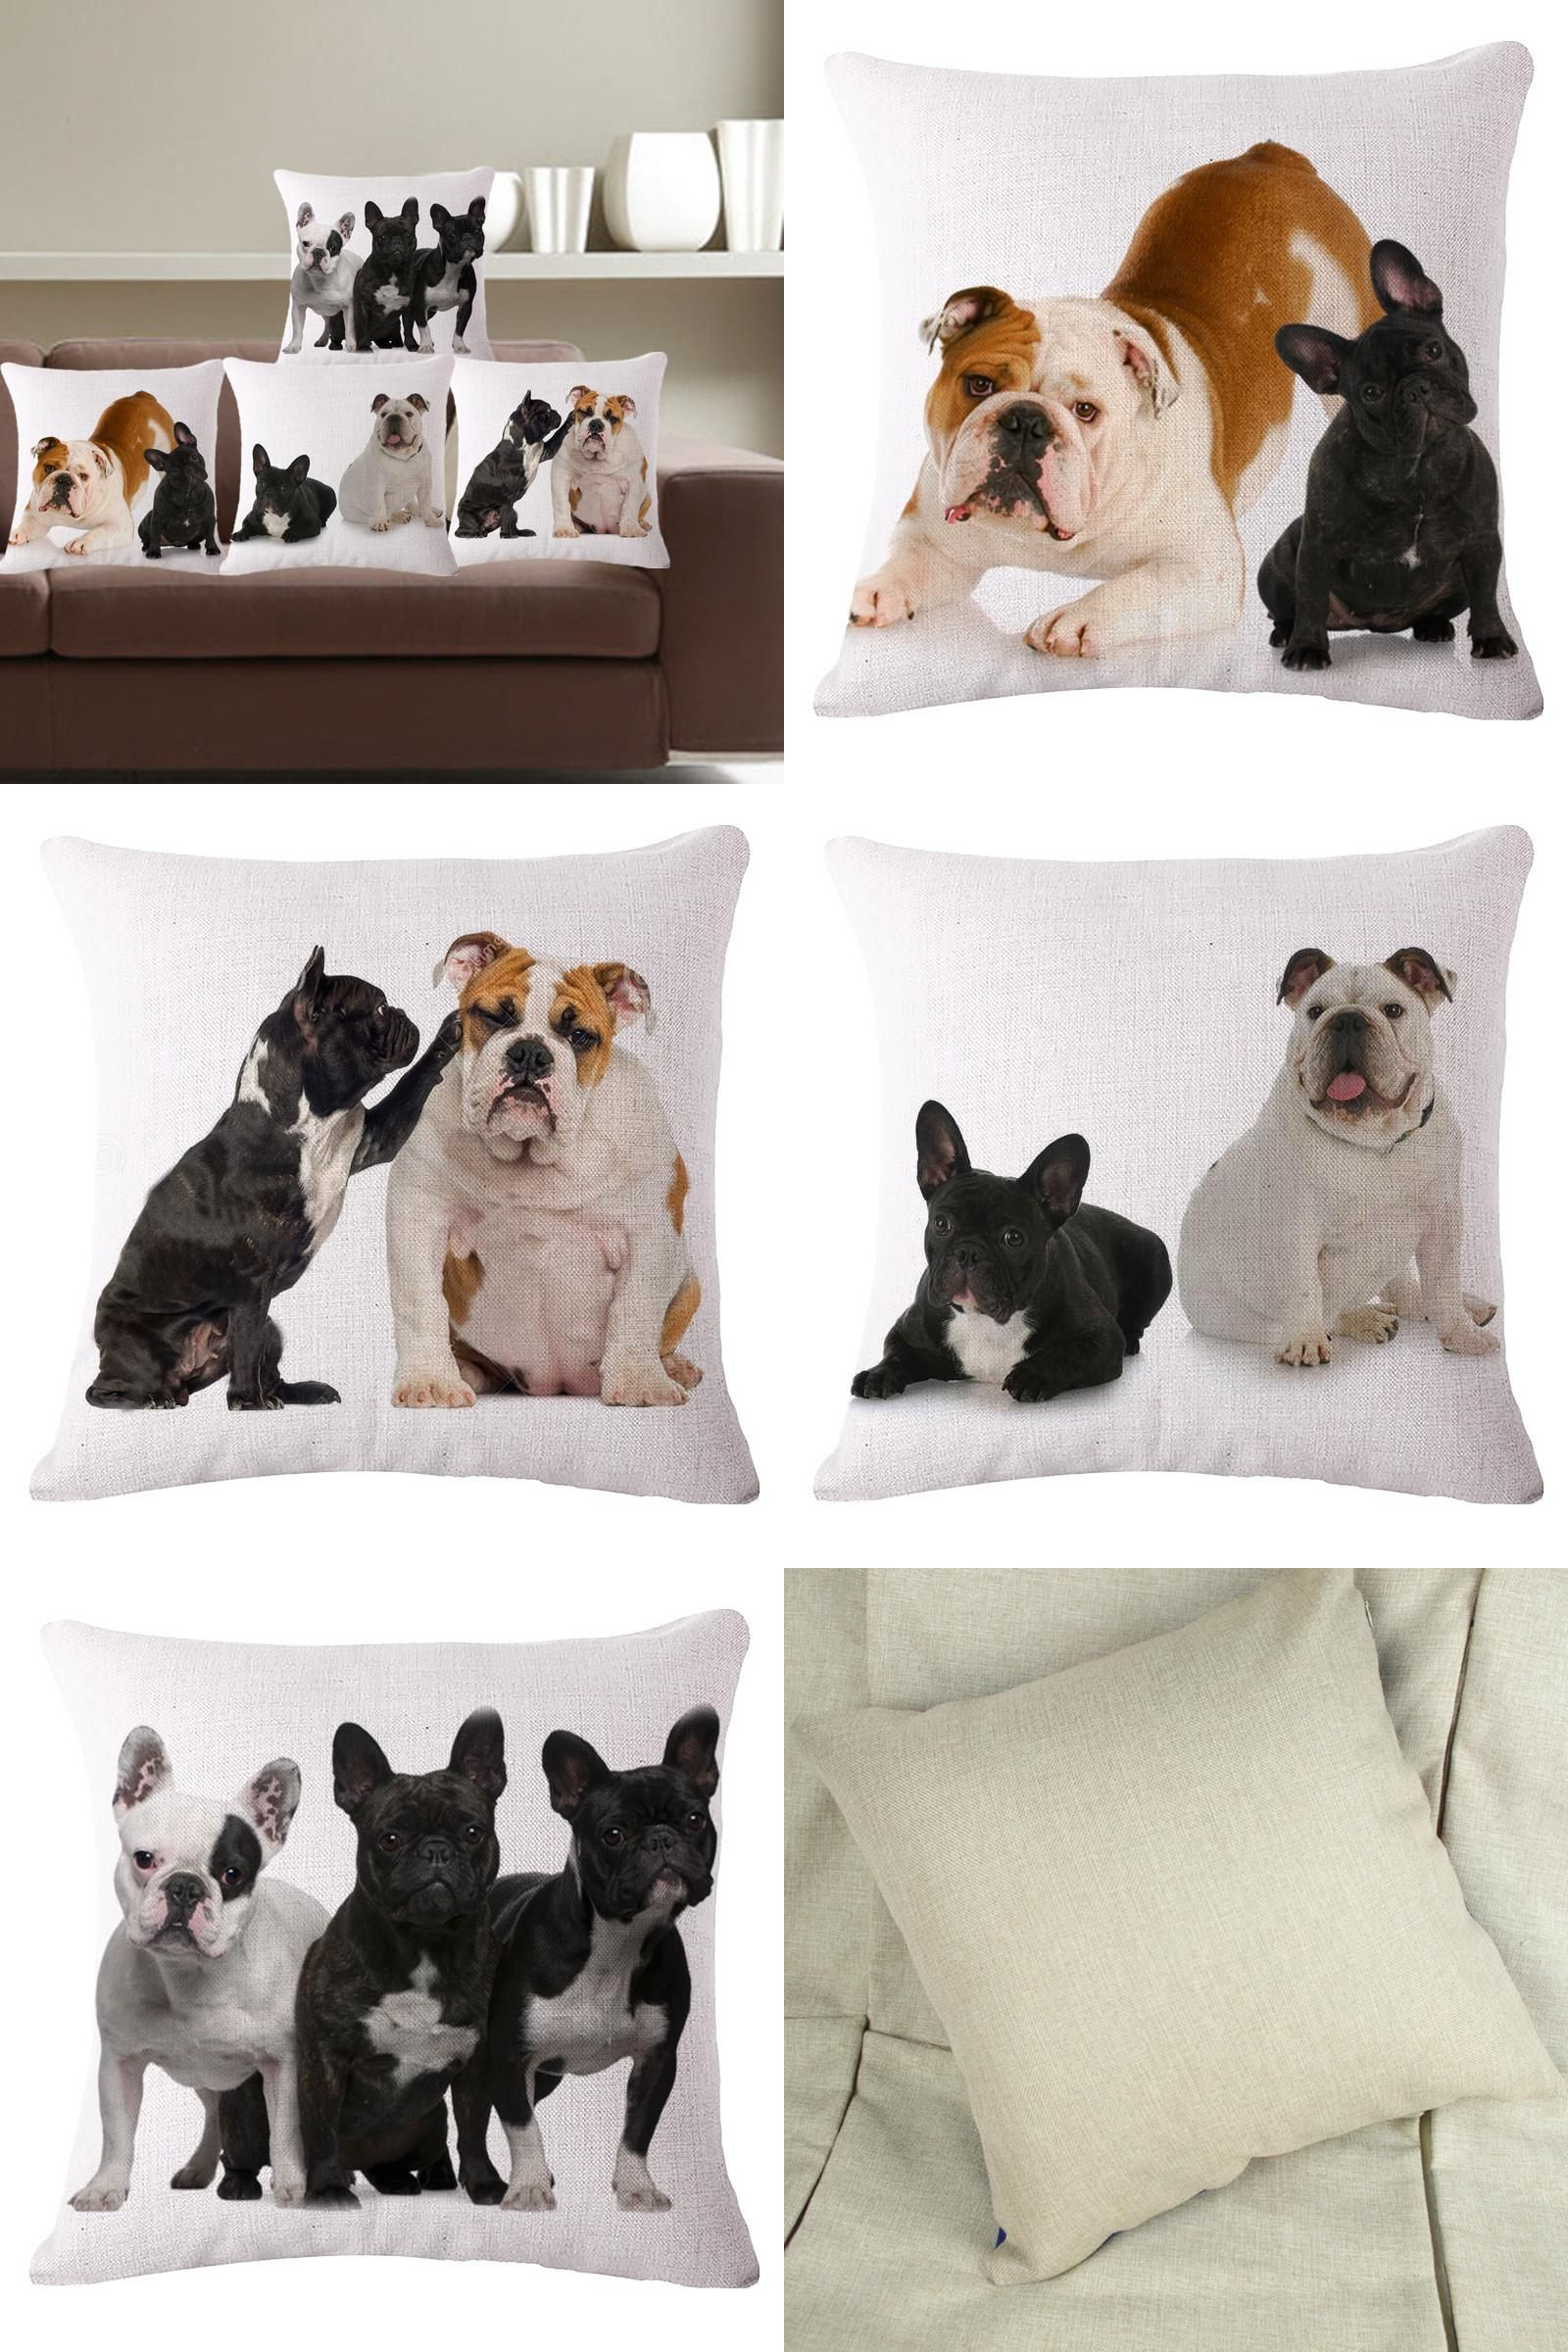 Visit to Buy] Pillow Case Laughing Dog Cotton Linen Cushion Cover